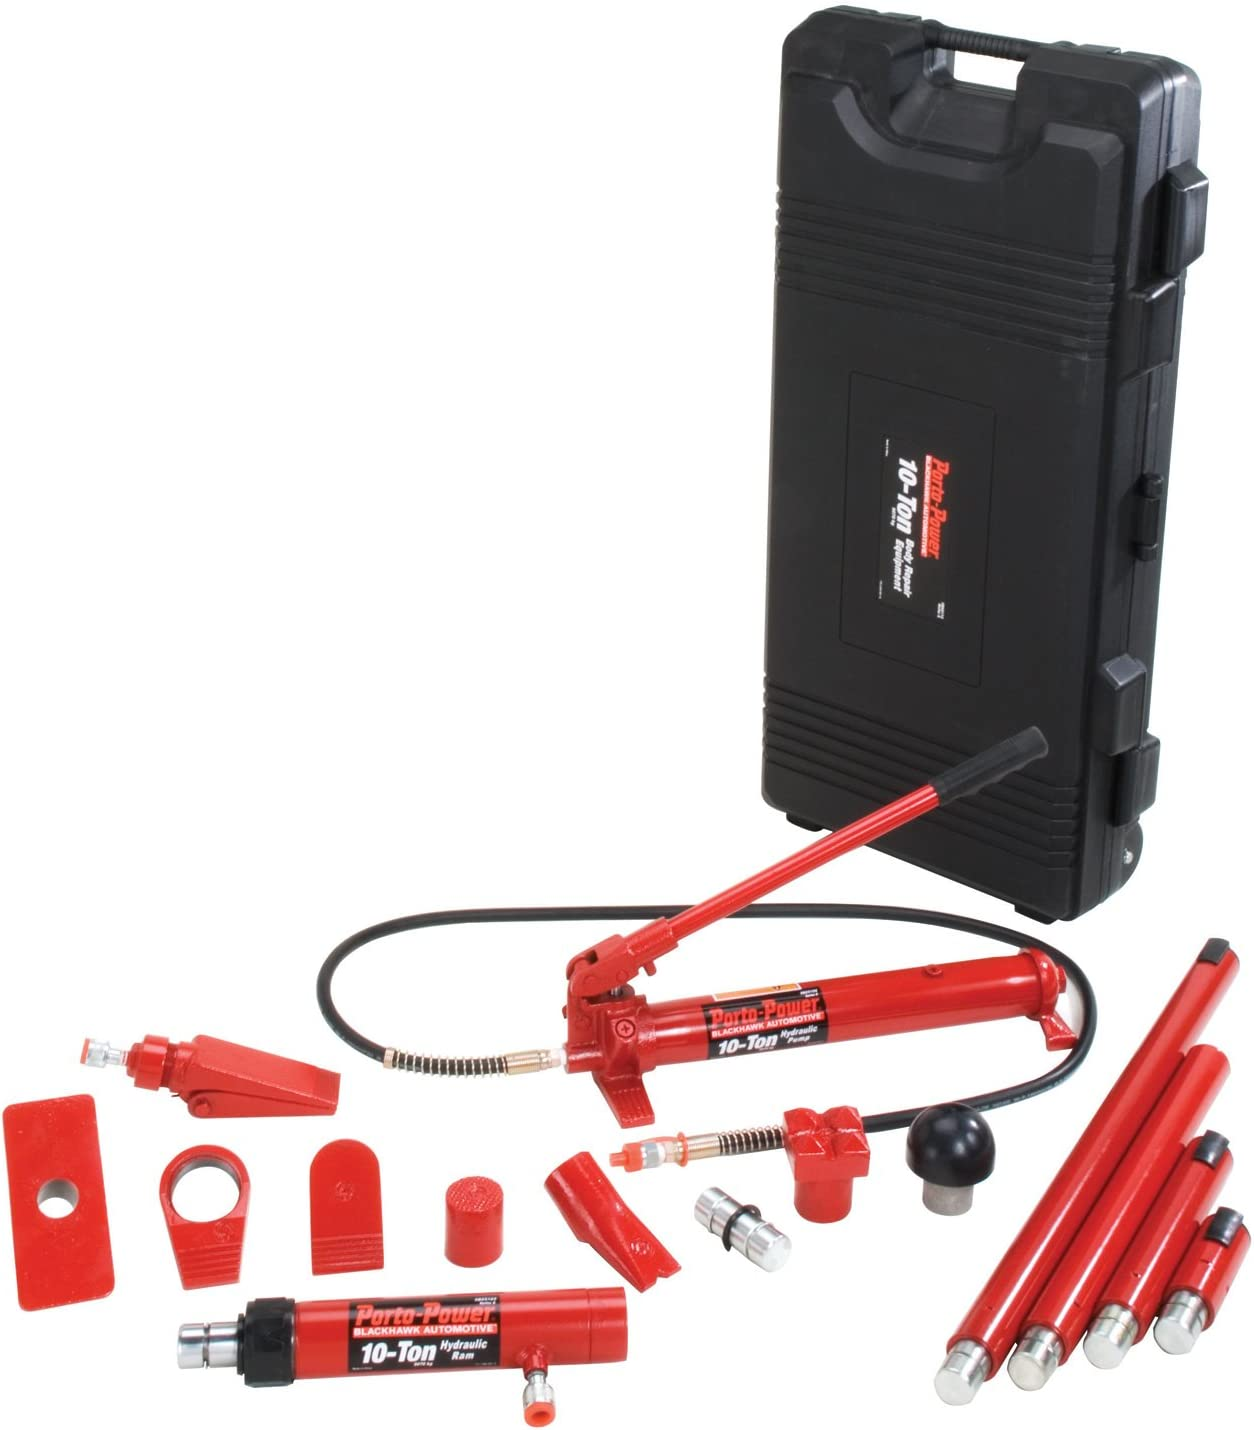 10 TON 6 in RAM  PORTA POWER RAM HI QUALITY REPLACES BIG RED BLACK HAWK OTC